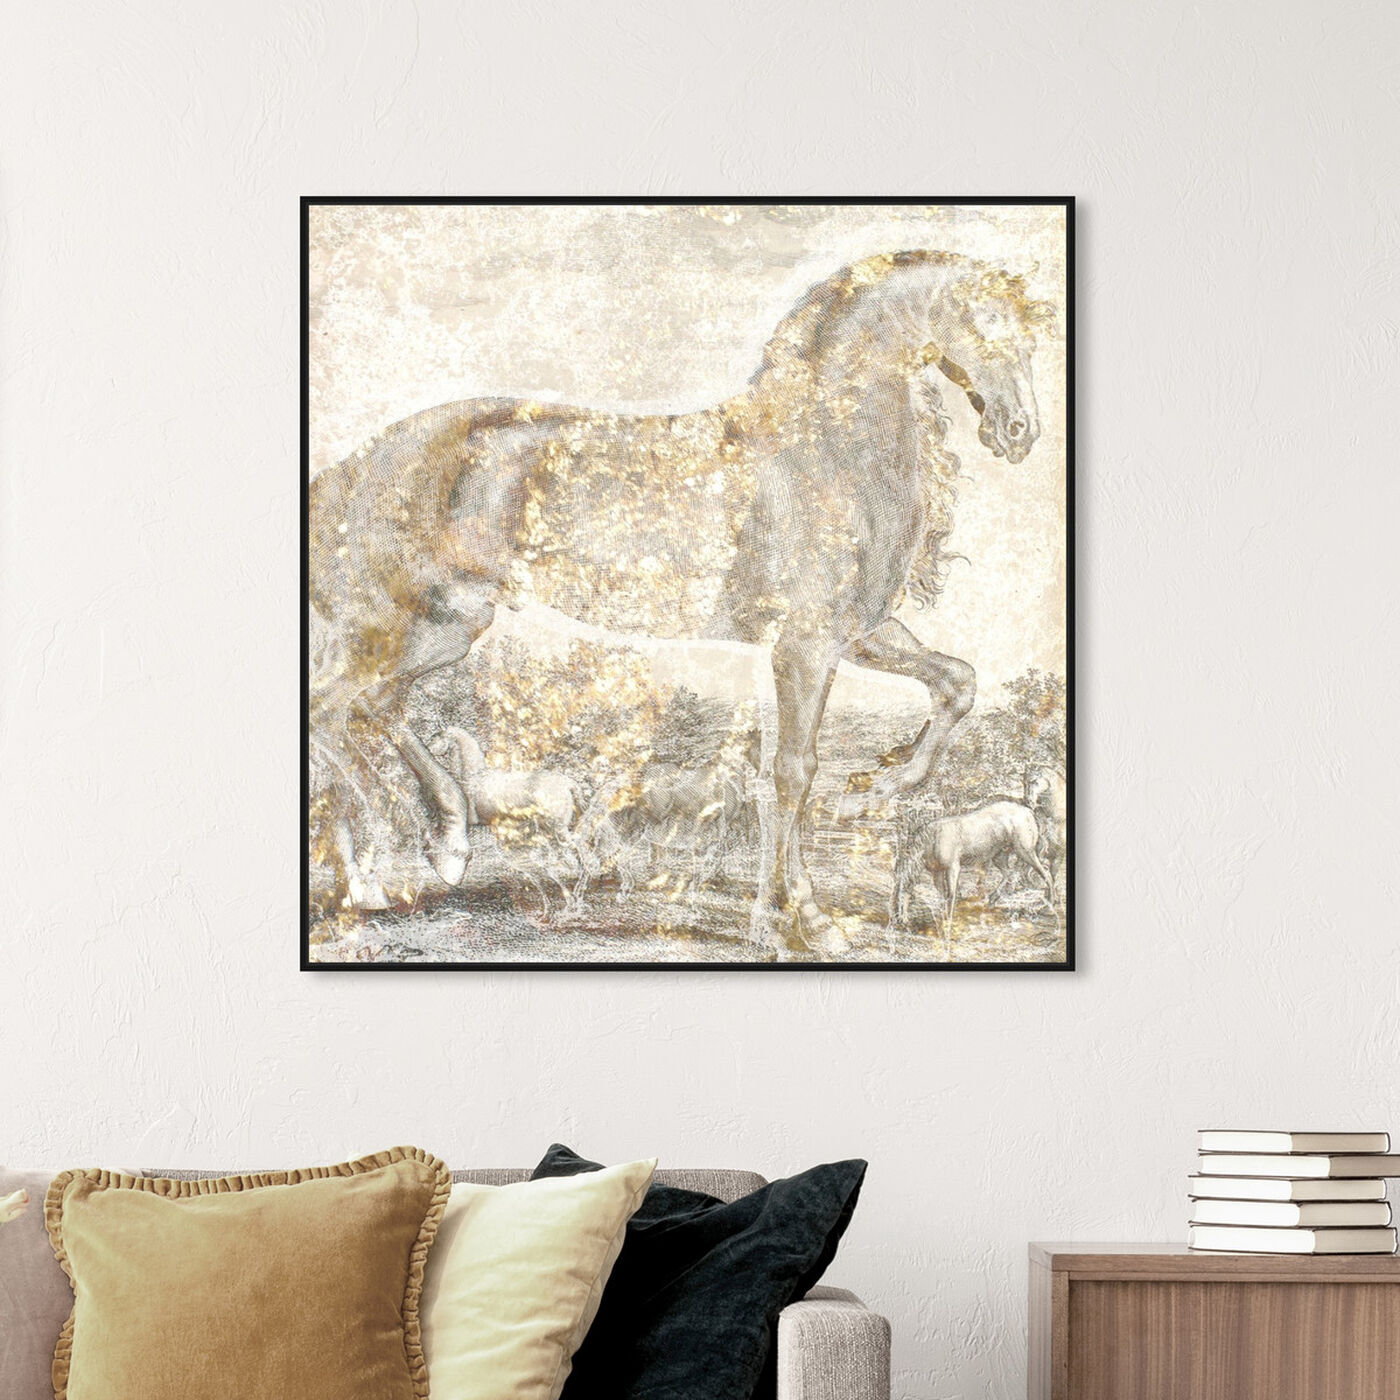 Hanging view of Brilliant Equestrian featuring animals and farm animals art.